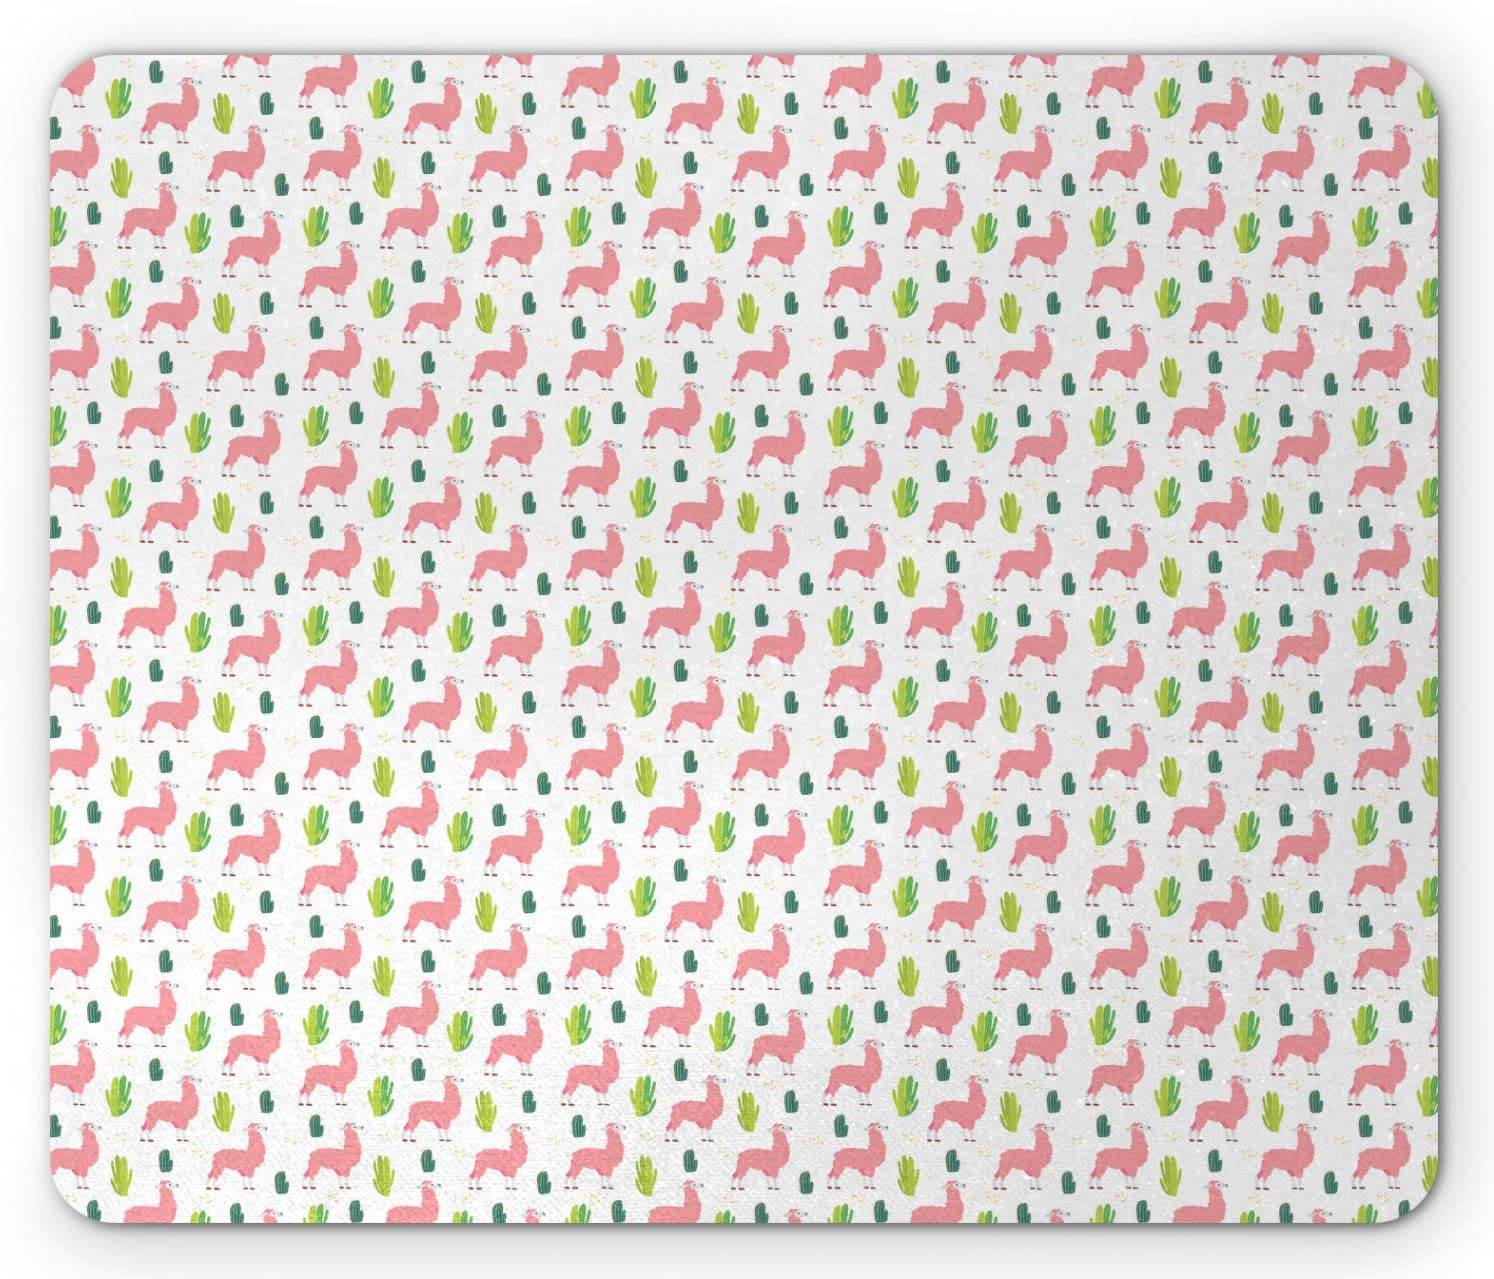 Ambesonne Llama Mouse Pad, Desert Animals and Cactus on a Plain Background, Rectangle Non-Slip Rubber Mousepad, Standard Size, White Pink Lime Green